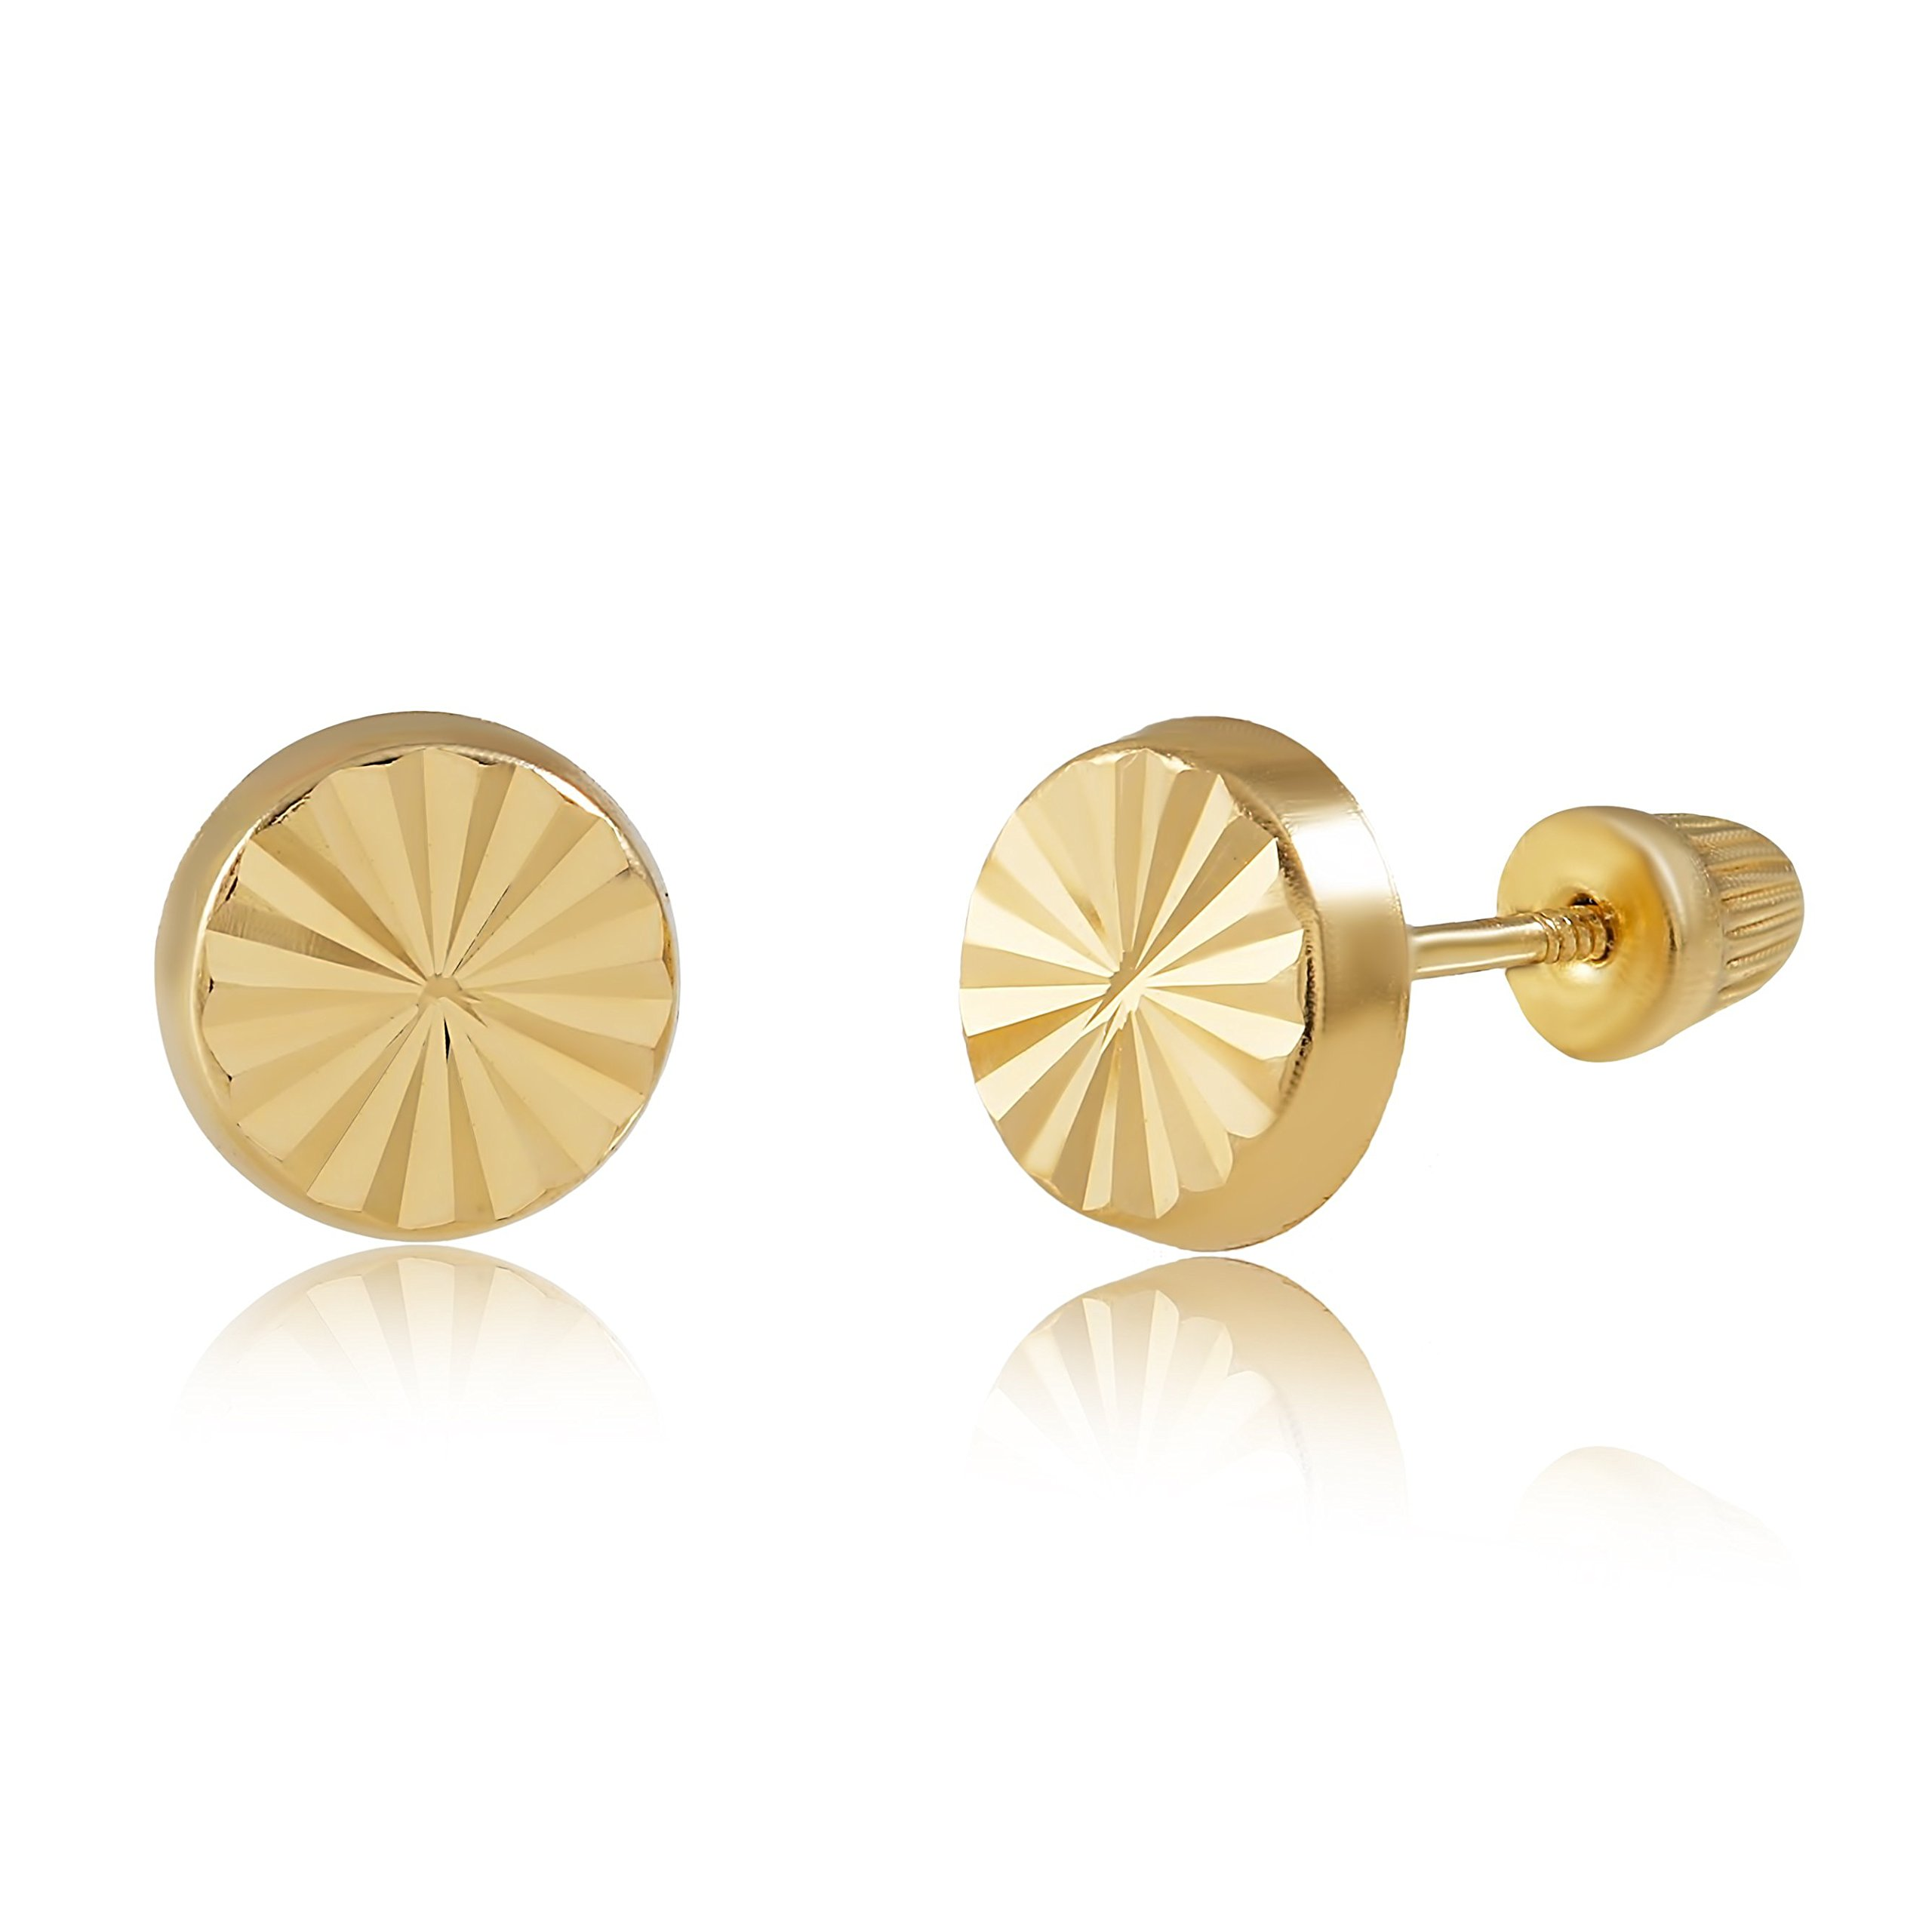 14K Yellow Gold Diamond Cut Round Stud Earrings for Women and Girls - Hypoallergenic for Sensitive Ears by Balluccitoosi